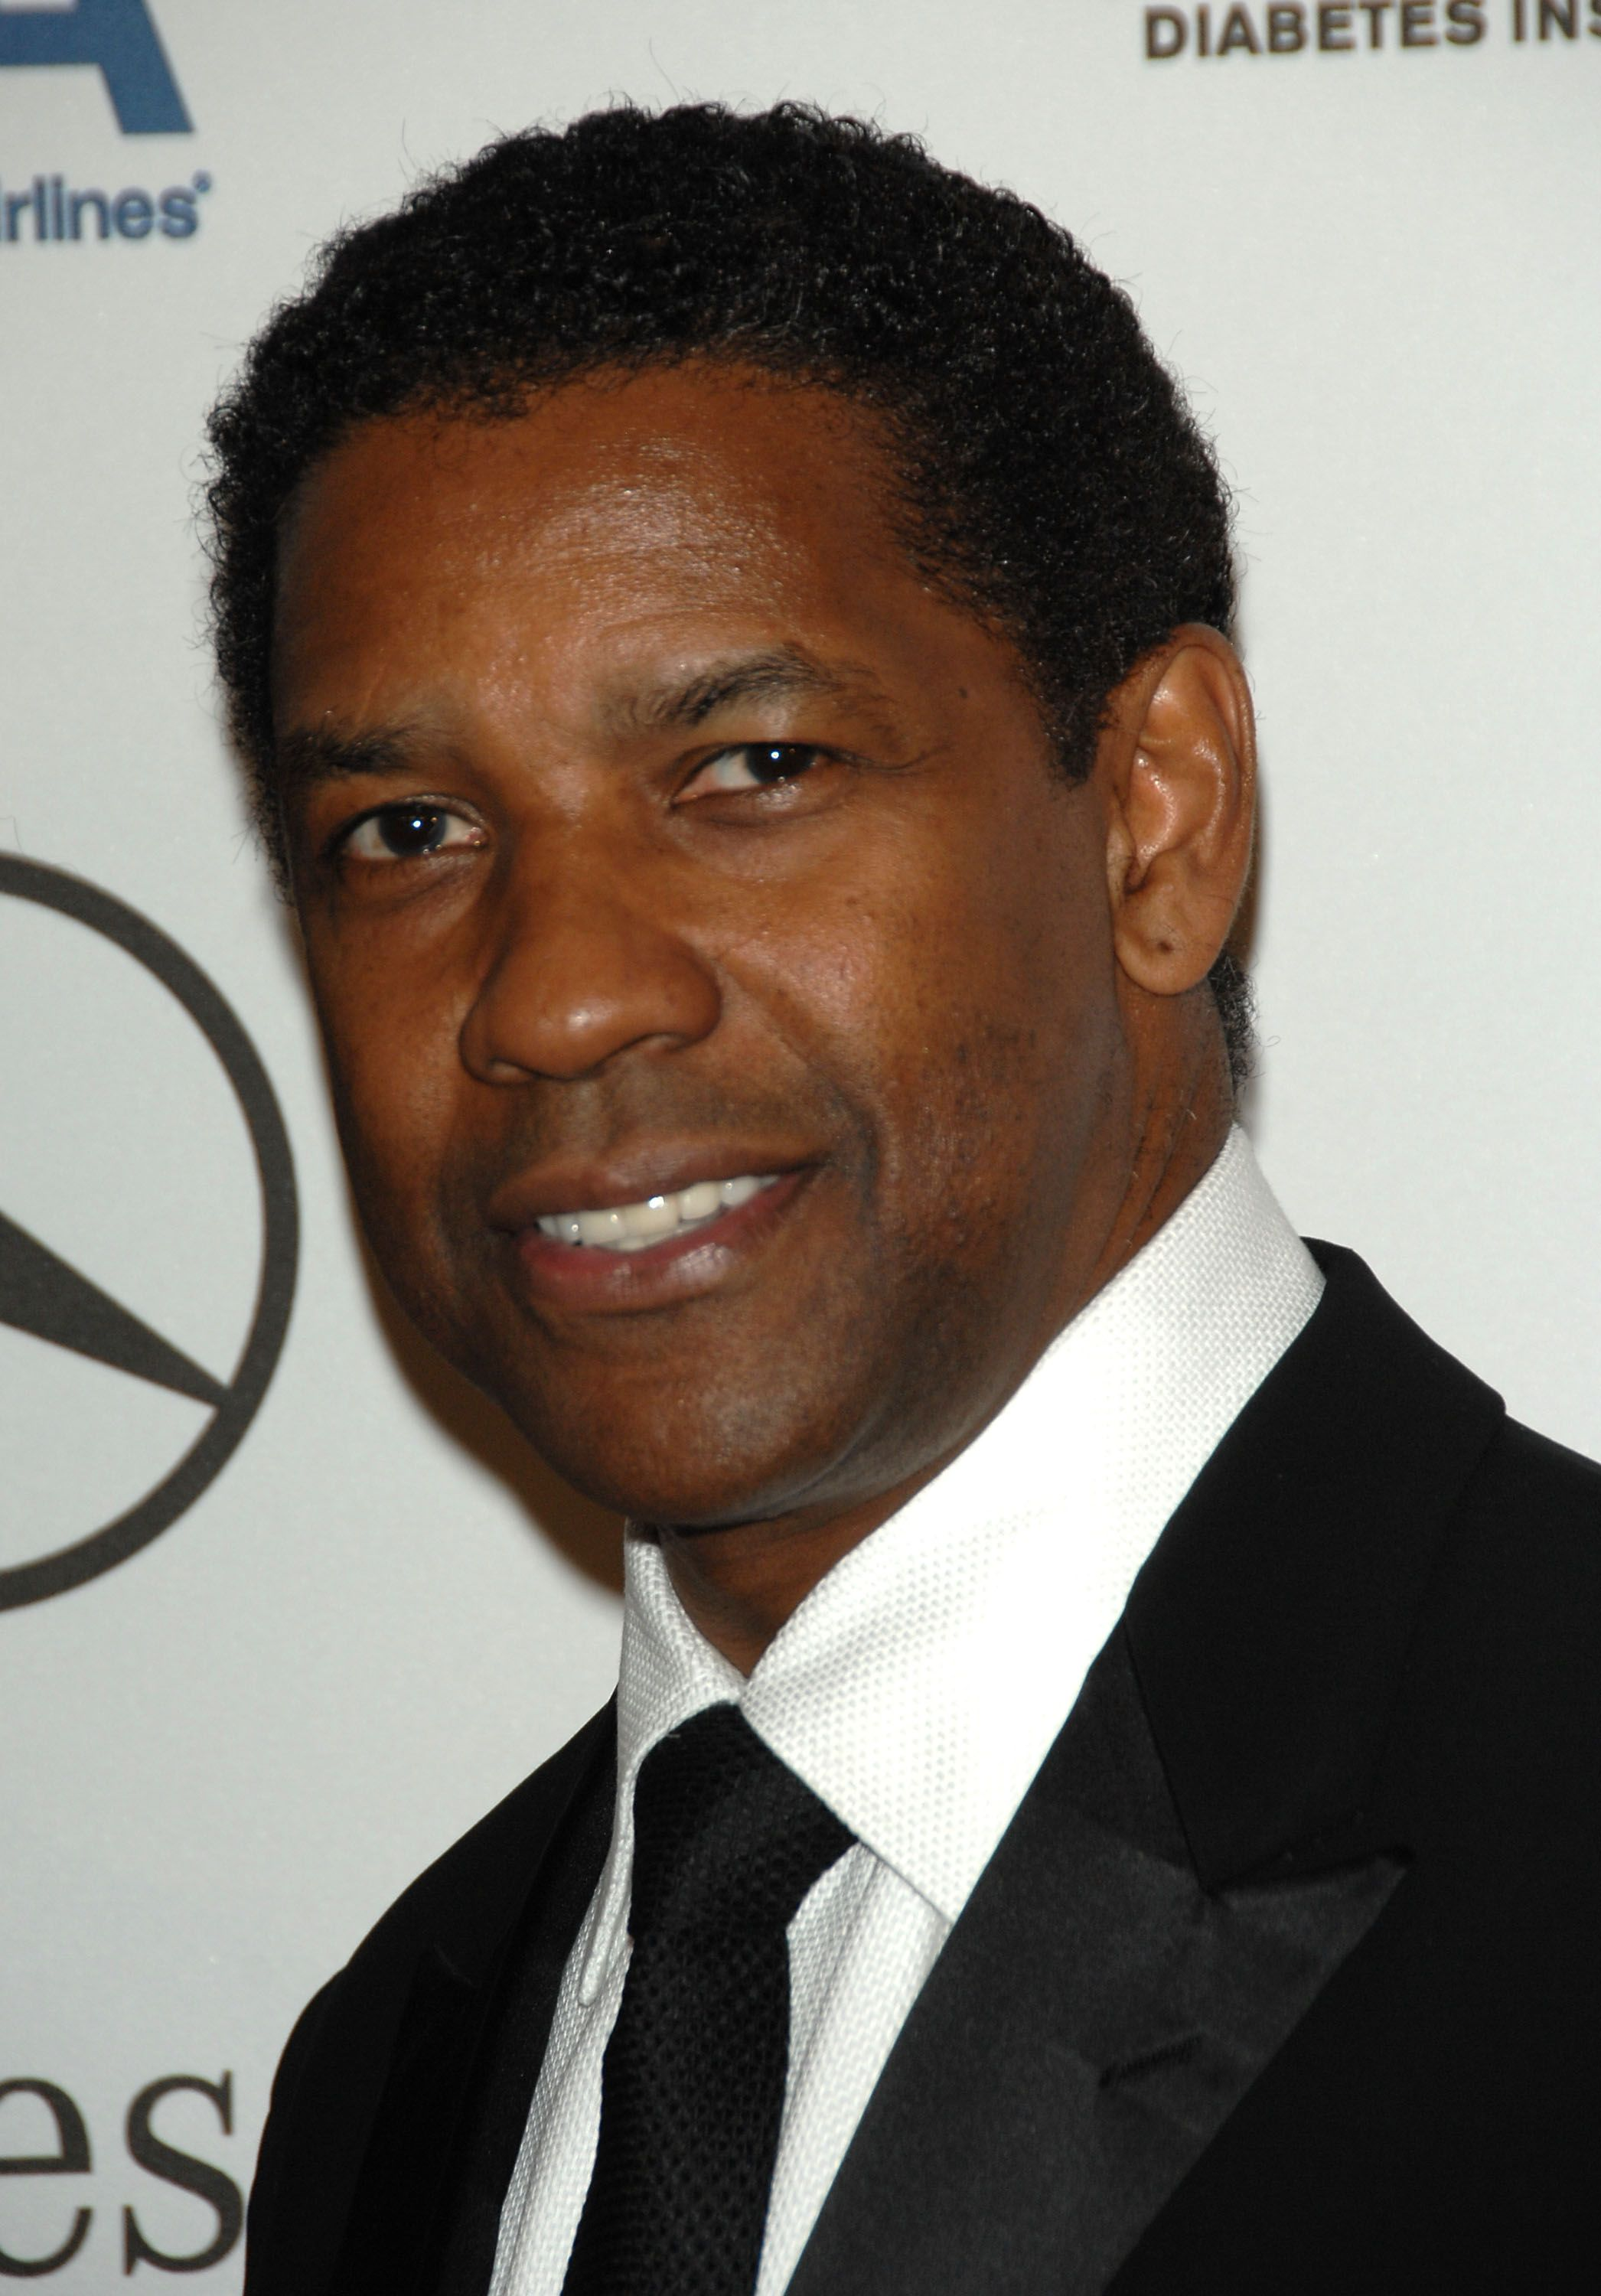 denzel washington filmsdenzel washington films, denzel washington filmleri, denzel washington wiki, denzel washington fences, denzel washington vse filmi, denzel washington movies, denzel washington kino, denzel washington filme, denzel washington son, denzel washington filmografia, denzel washington height, denzel washington 2017, denzel washington trump, denzel washington family, denzel washington filmebi, denzel washington net worth, denzel washington filmebi qartulad, denzel washington new movie, denzel washington new movie 2016, denzel washington gif